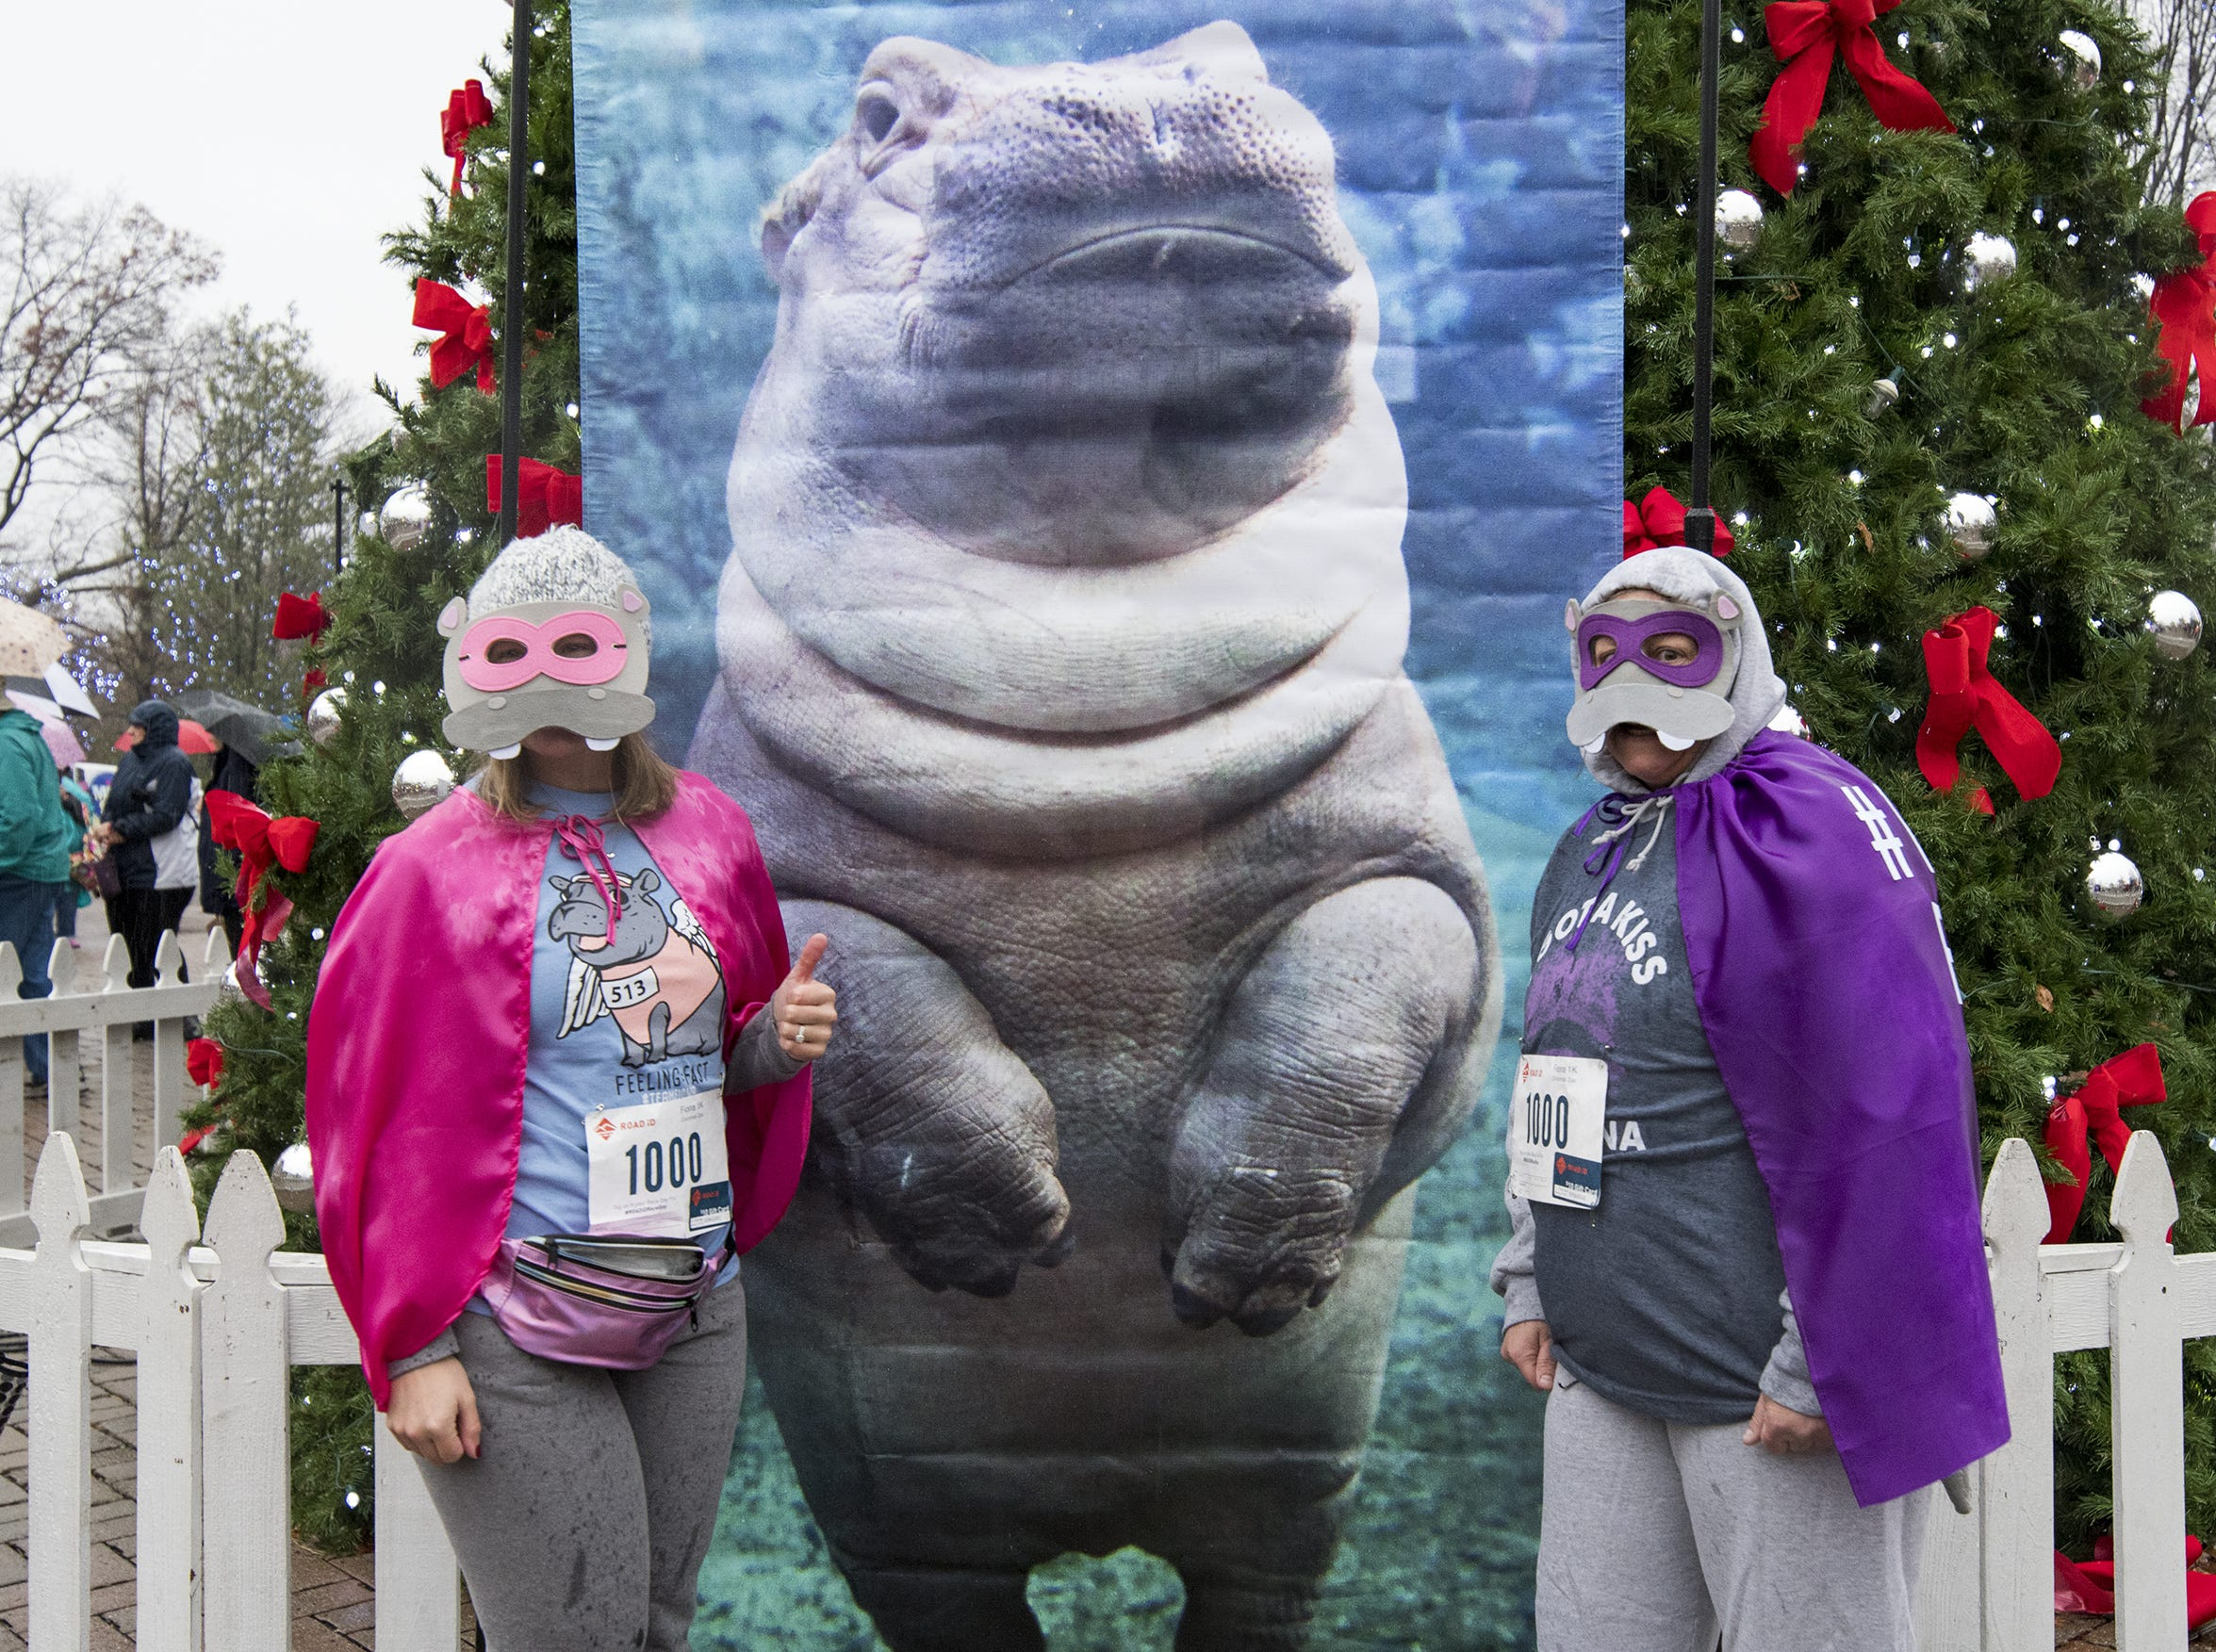 Leigh Hartung of Delhi and Linda Gold of White Oak pose with a giant Fiona poster at the Cincinnati Zoo's Fiona 1k walk in honor of the beloved hippo's 1,000-pound milestone Saturday, December 1, 2018 in Cincinnati, Ohio.